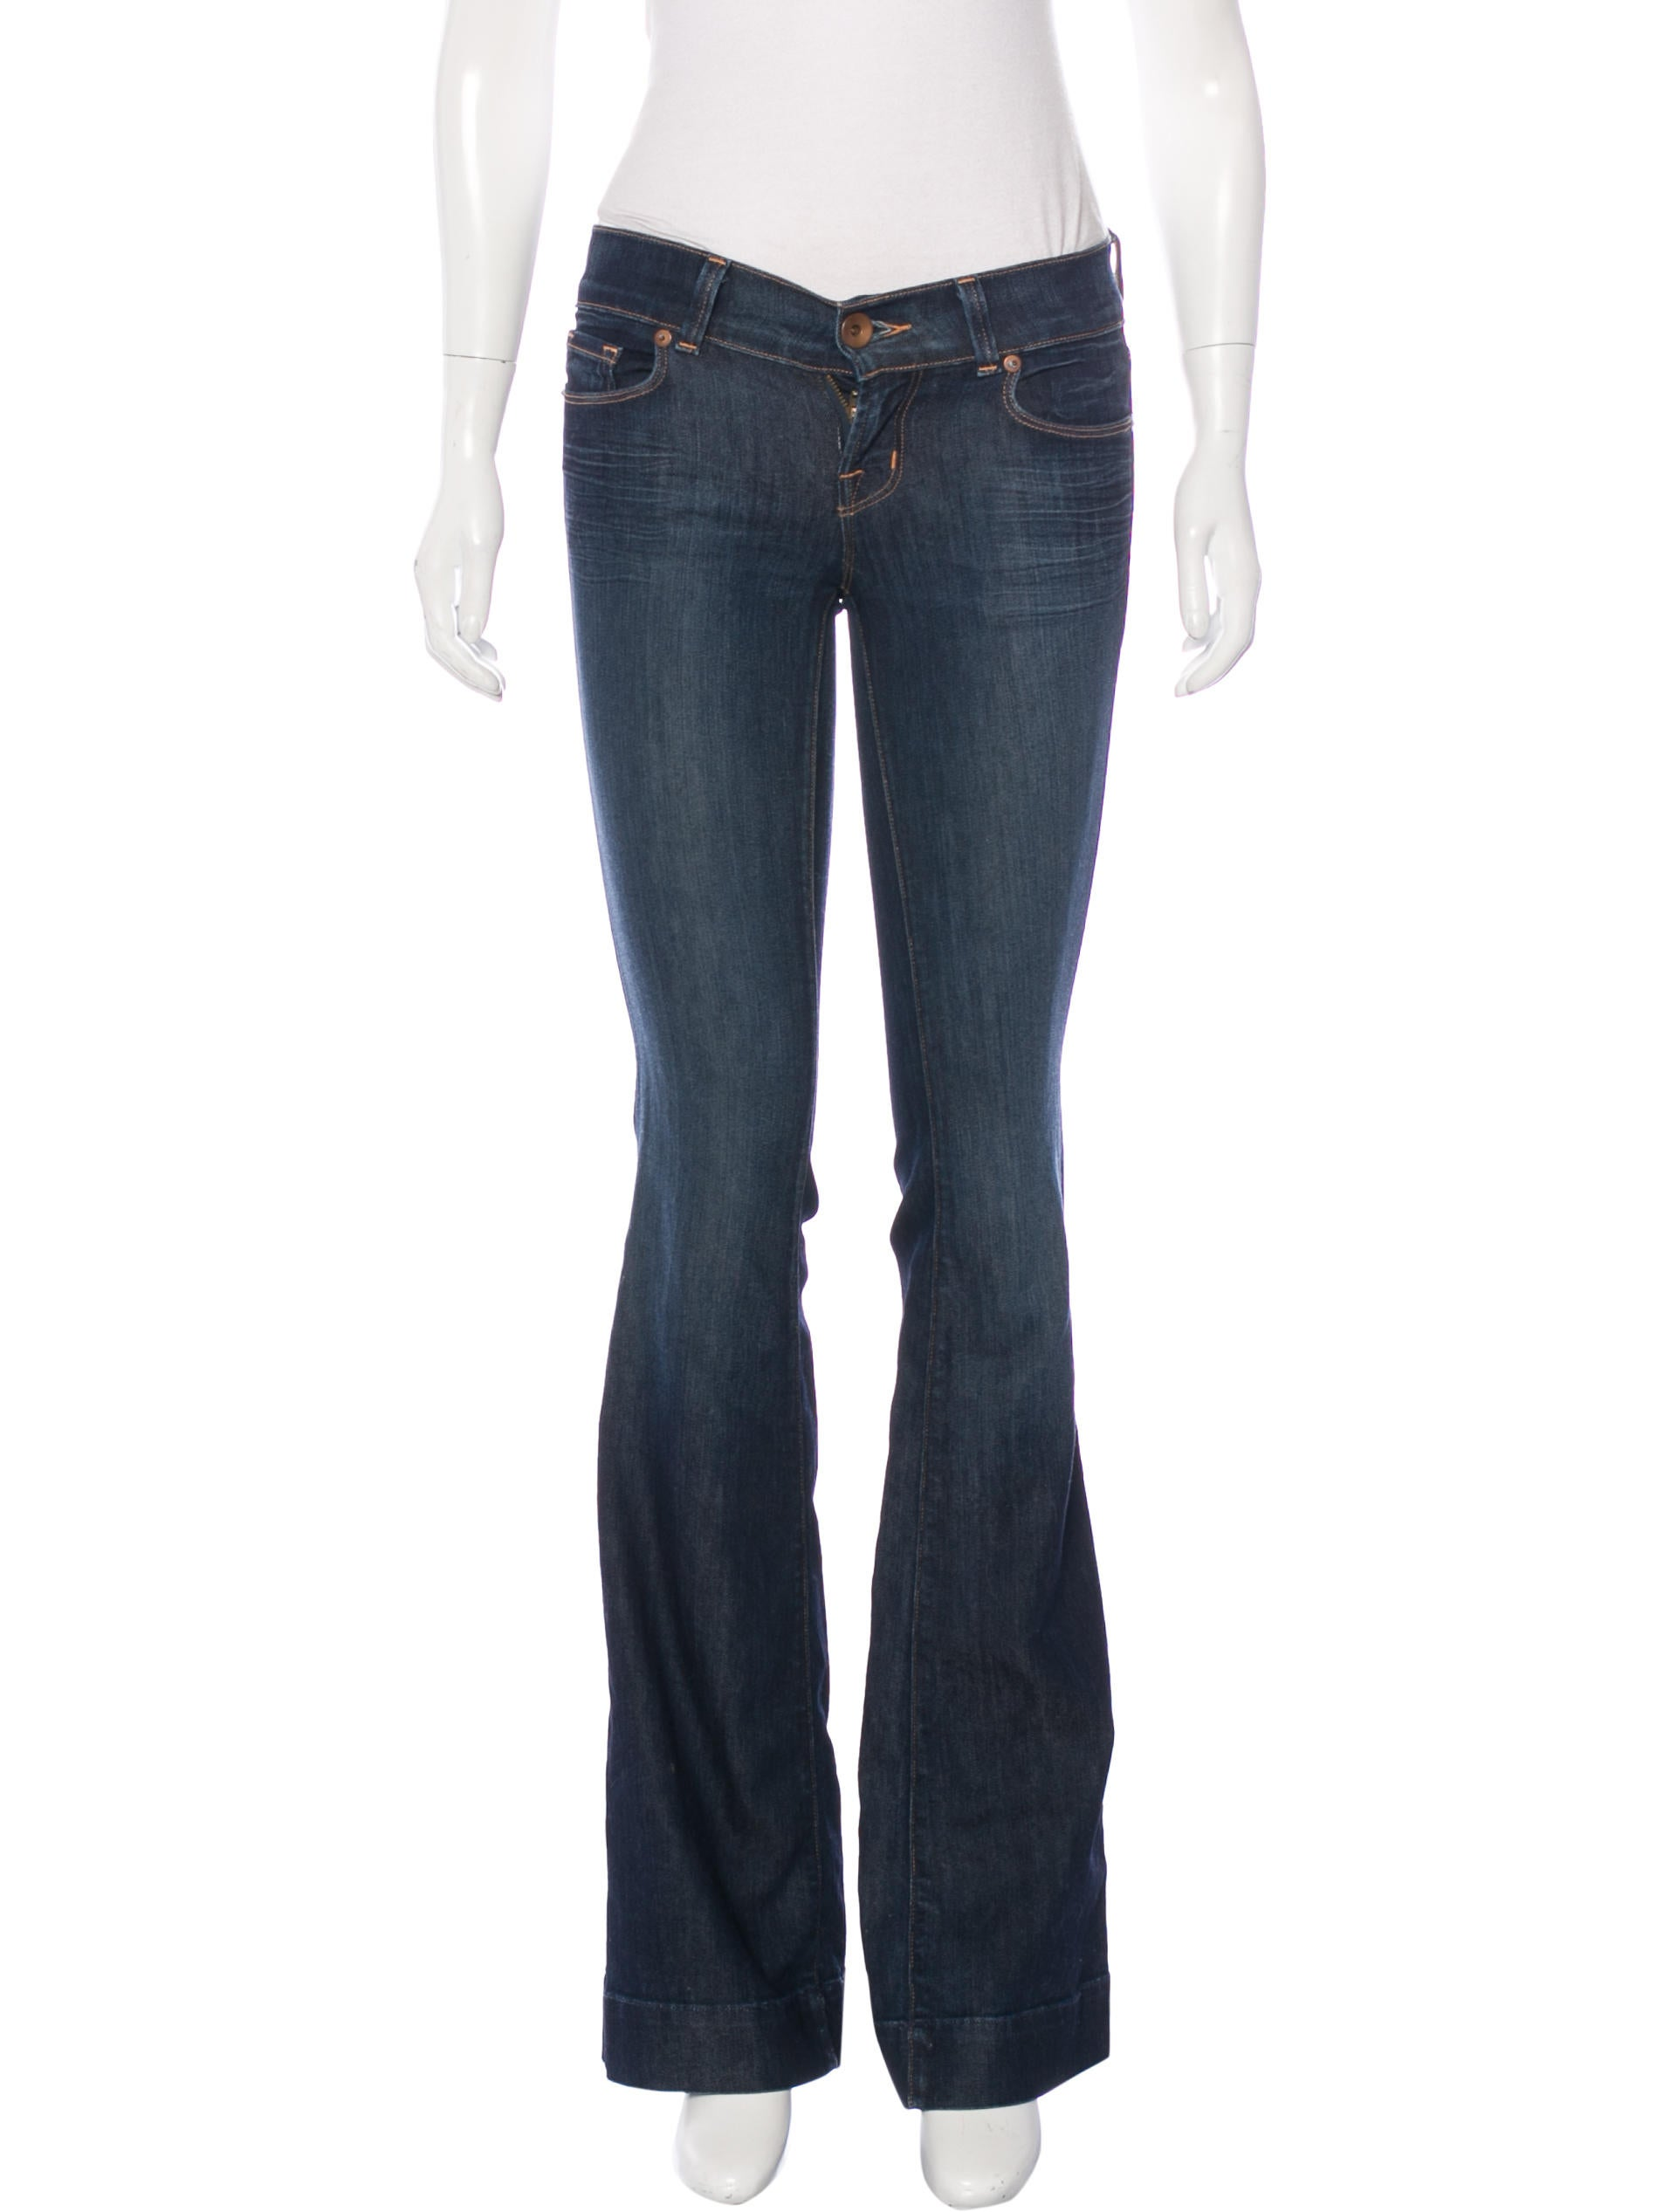 J Brand Low-Rise Flare Jeans - Clothing